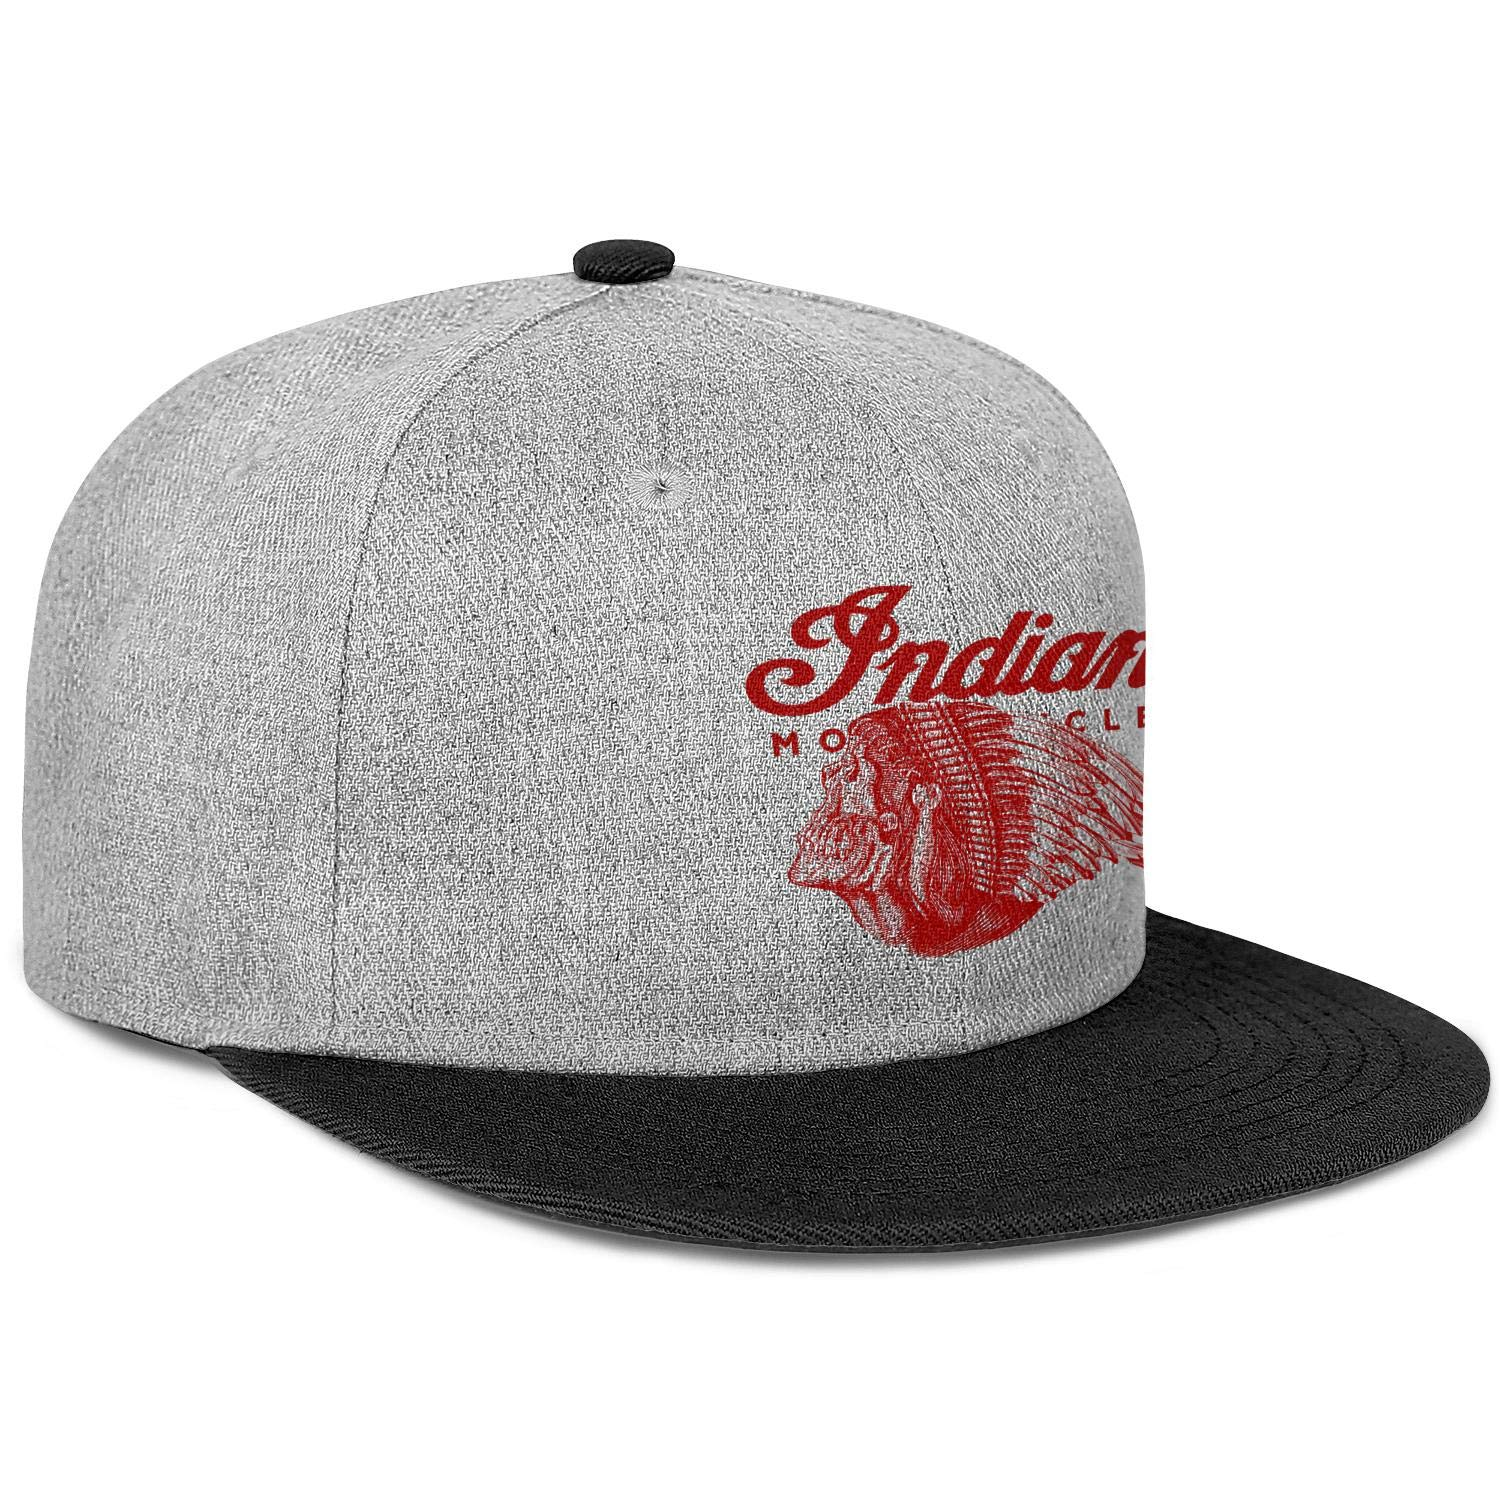 Baseball Cap Popular Hip Hop Caps Sport Hat Motion Snapback Hat Mens Trucker Hats sdfjkoinj Man Mens Indian-Motorcycles-logp